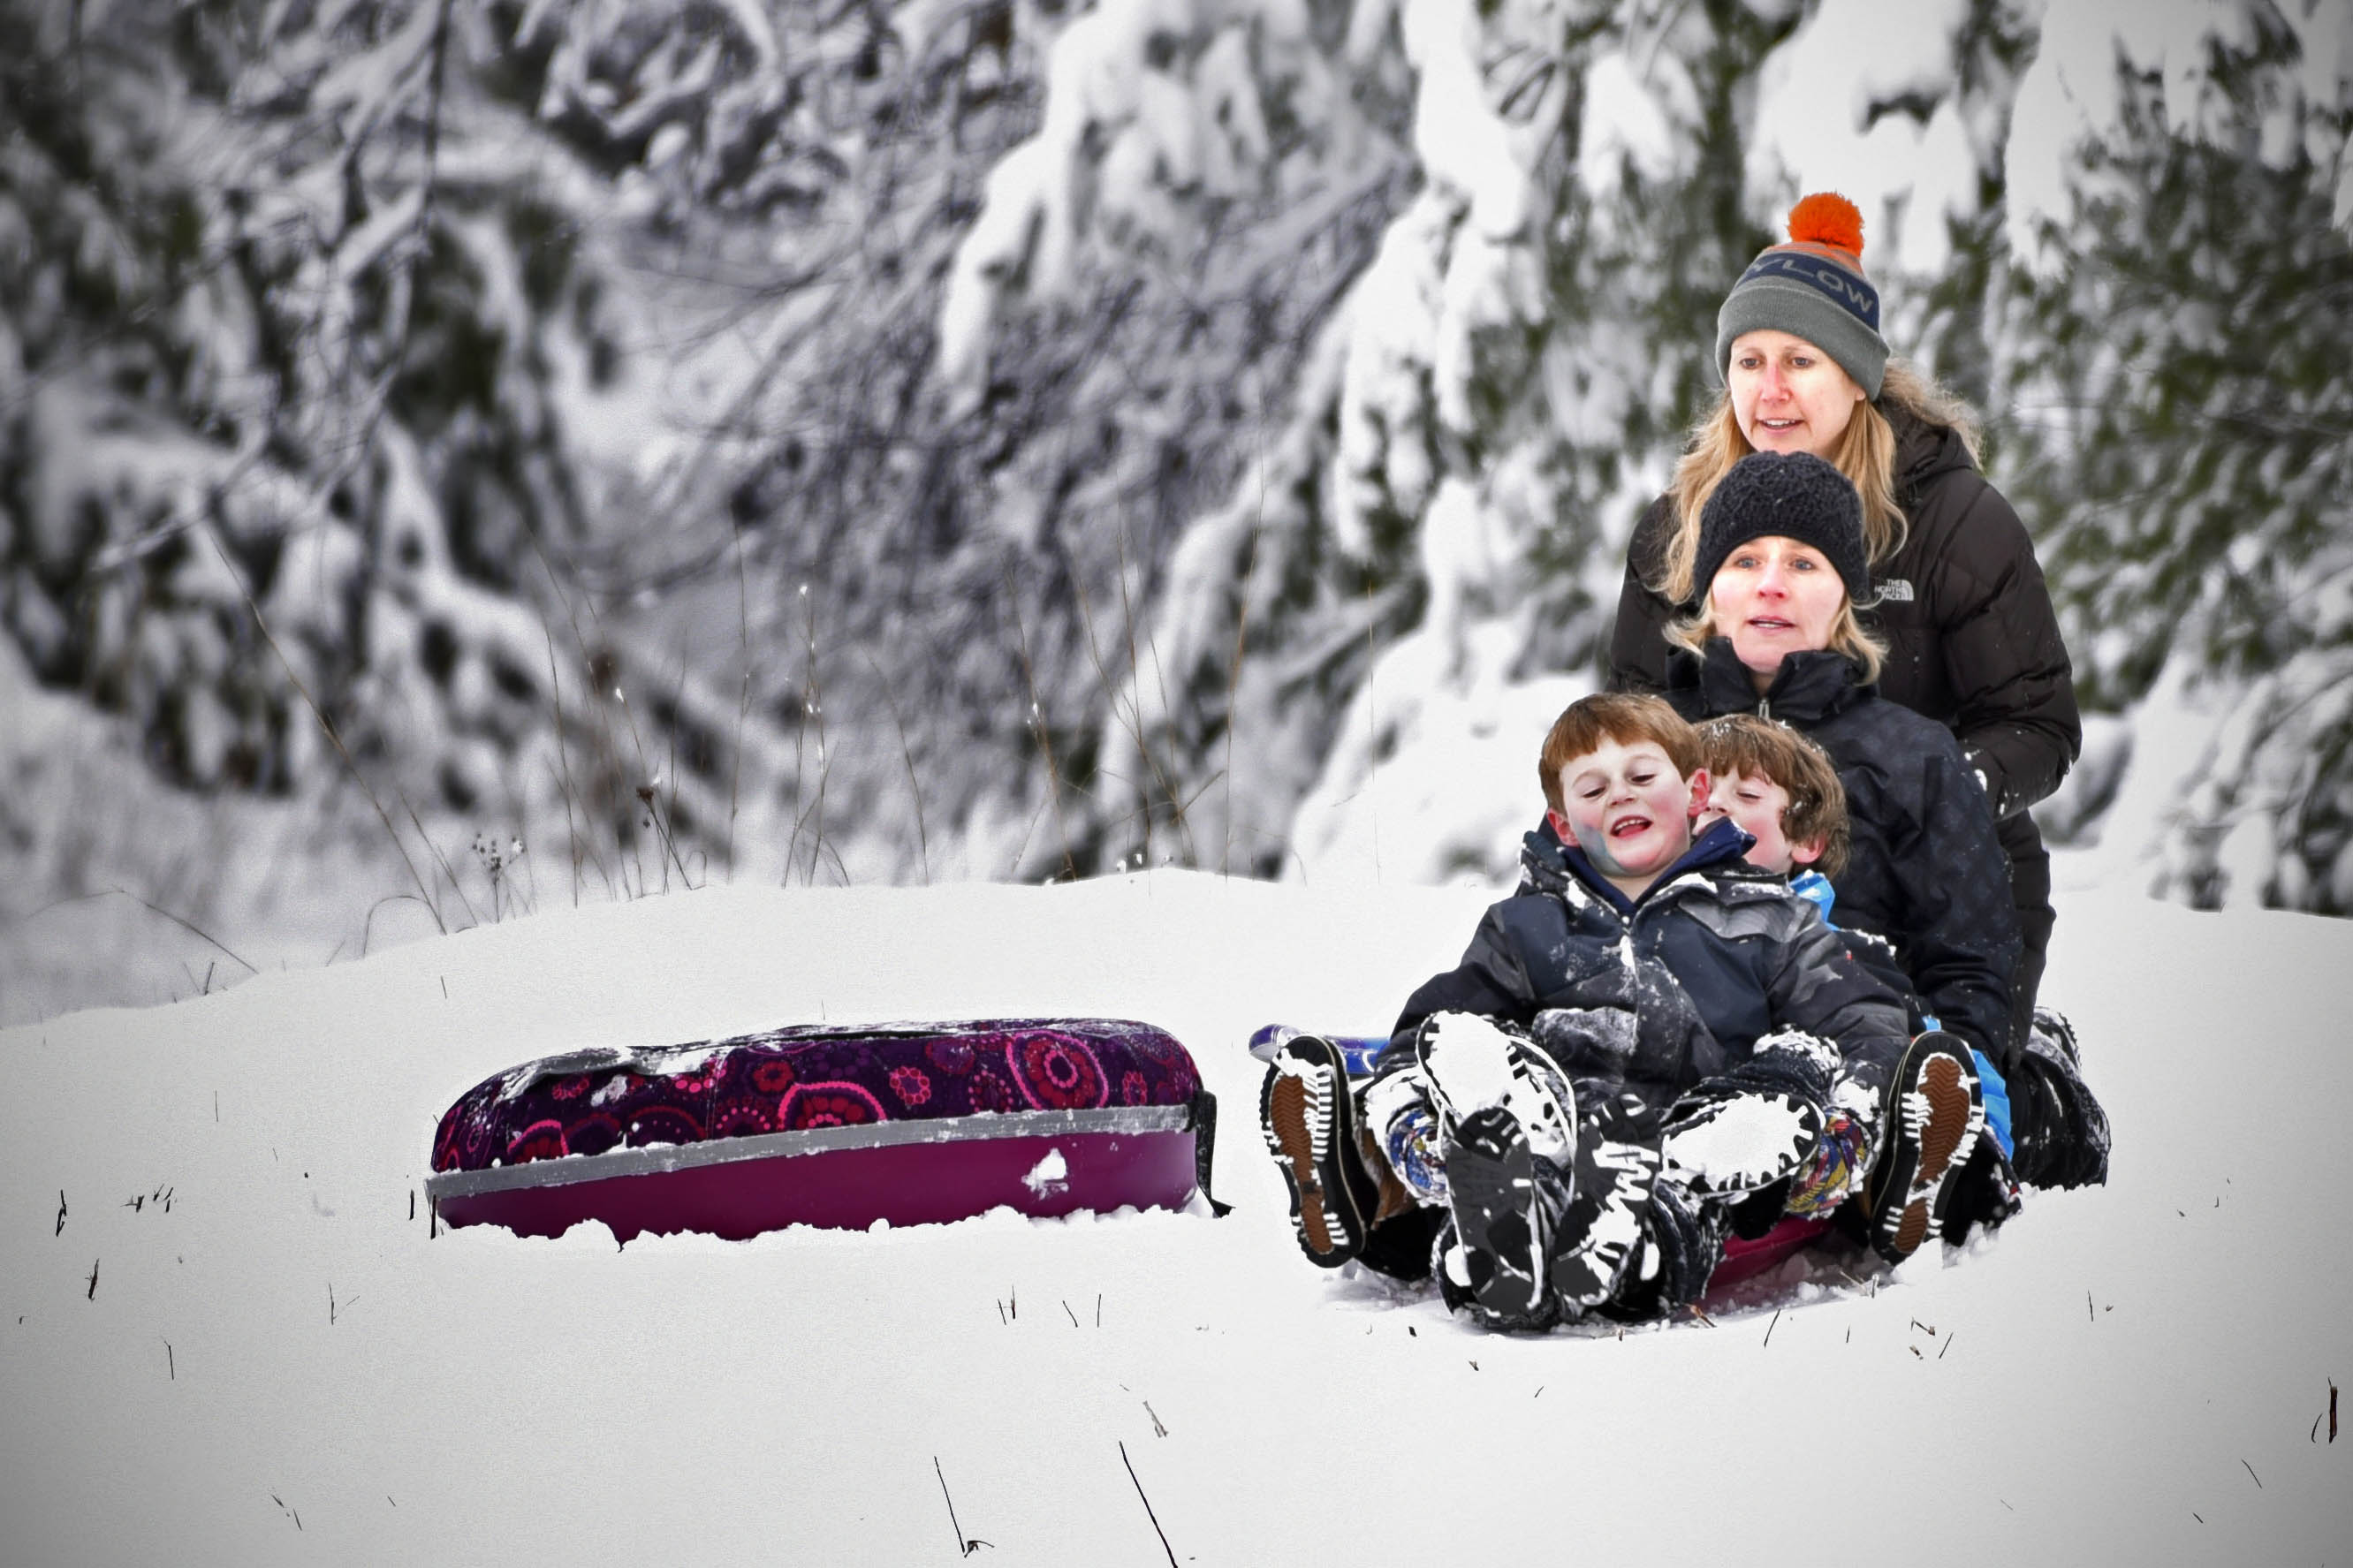 Mother pushing children on their snow sled